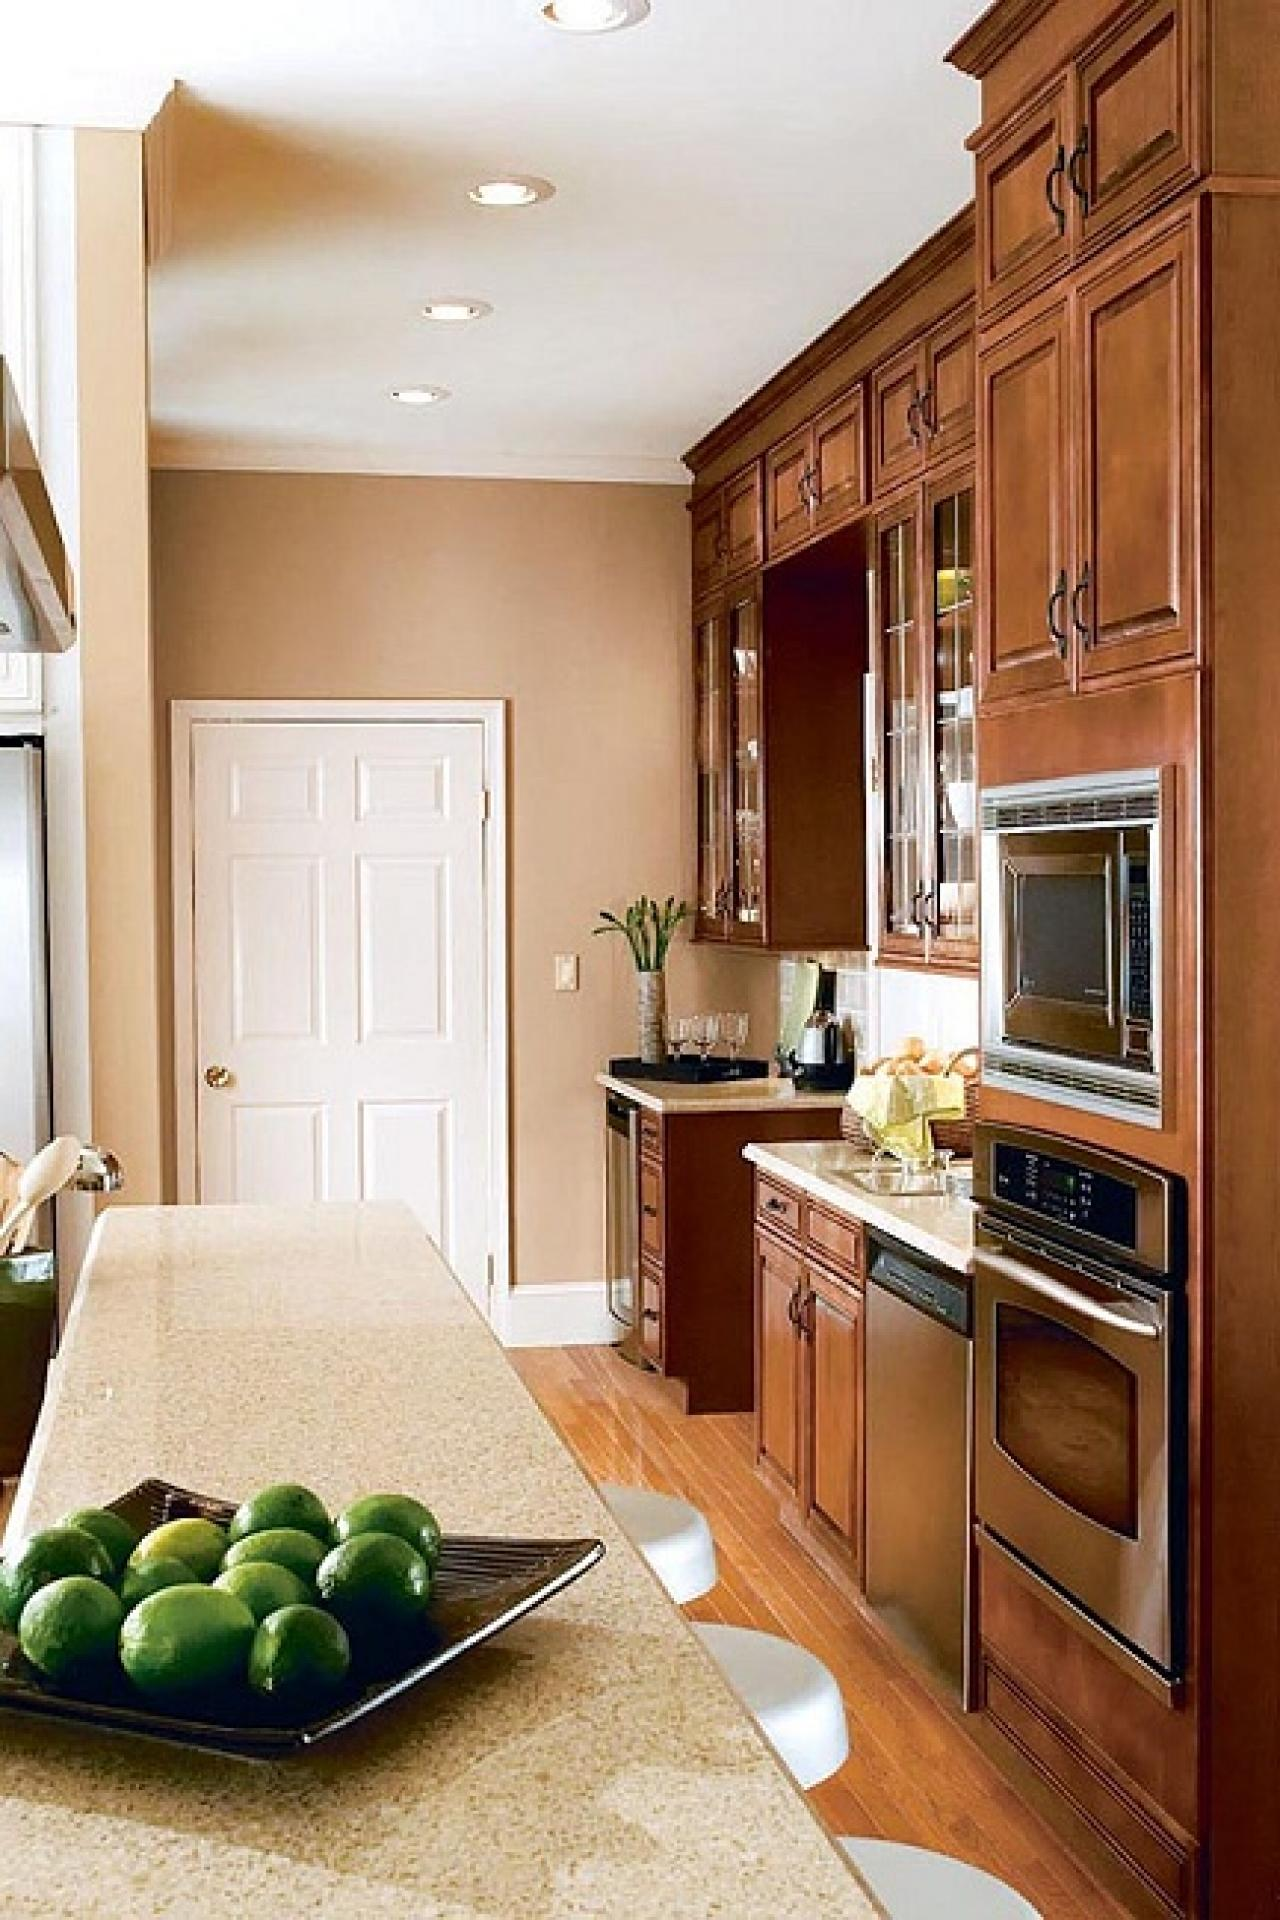 Colors That Bring Out The Best In Your Kitchen HGTV - Best color for kitchen walls with wood cabinets